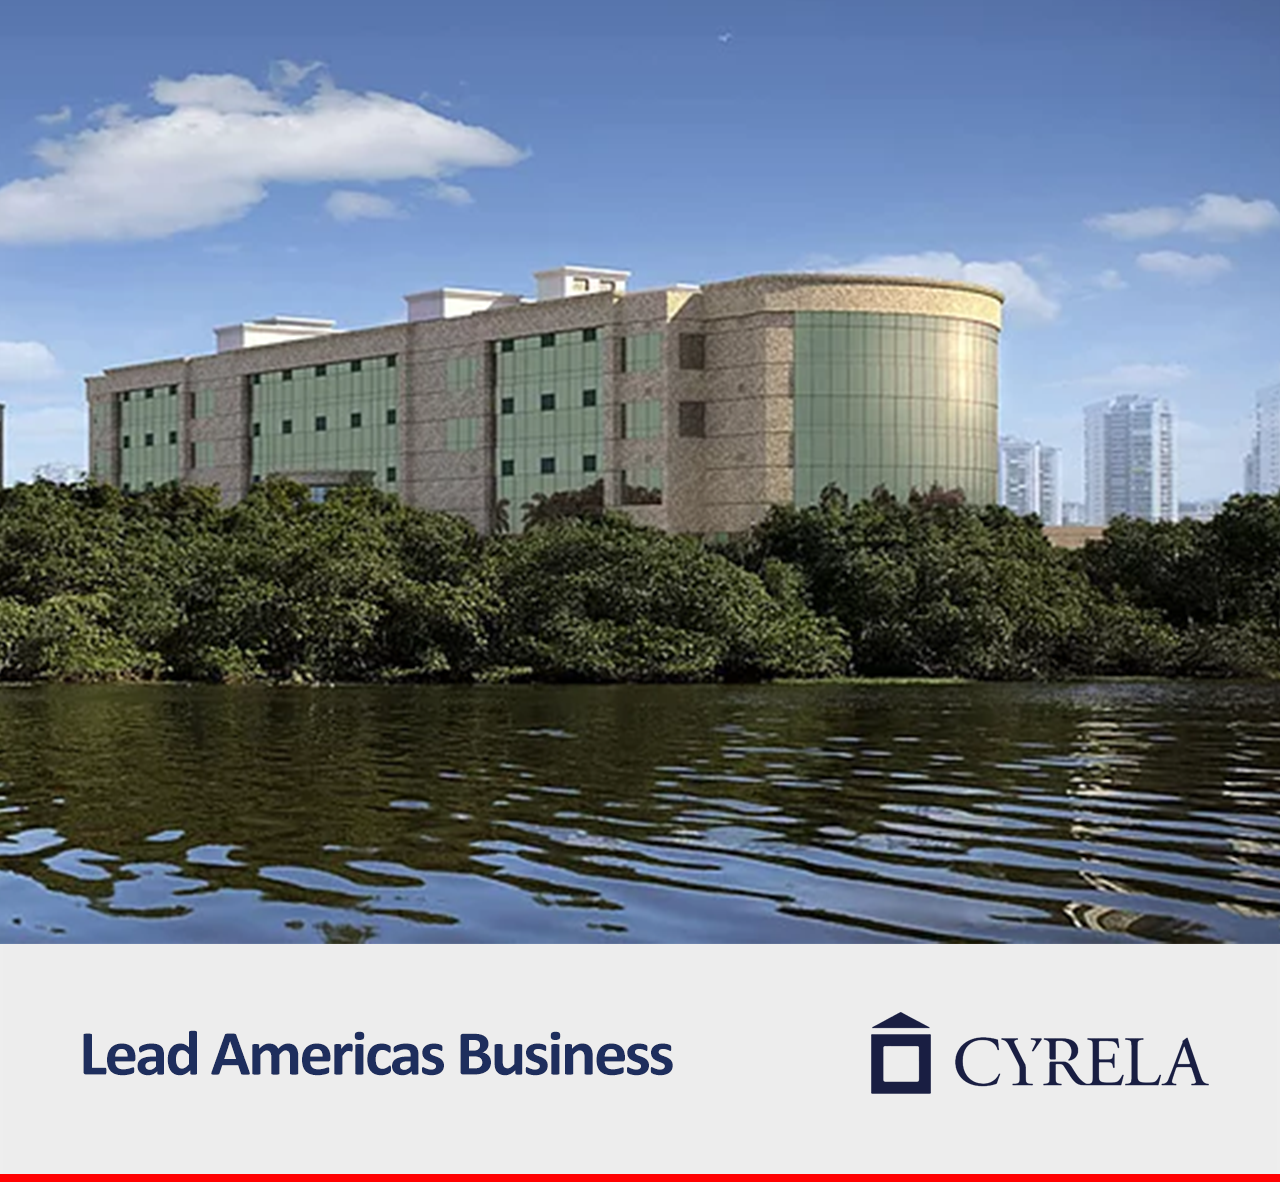 Lead Americas Business